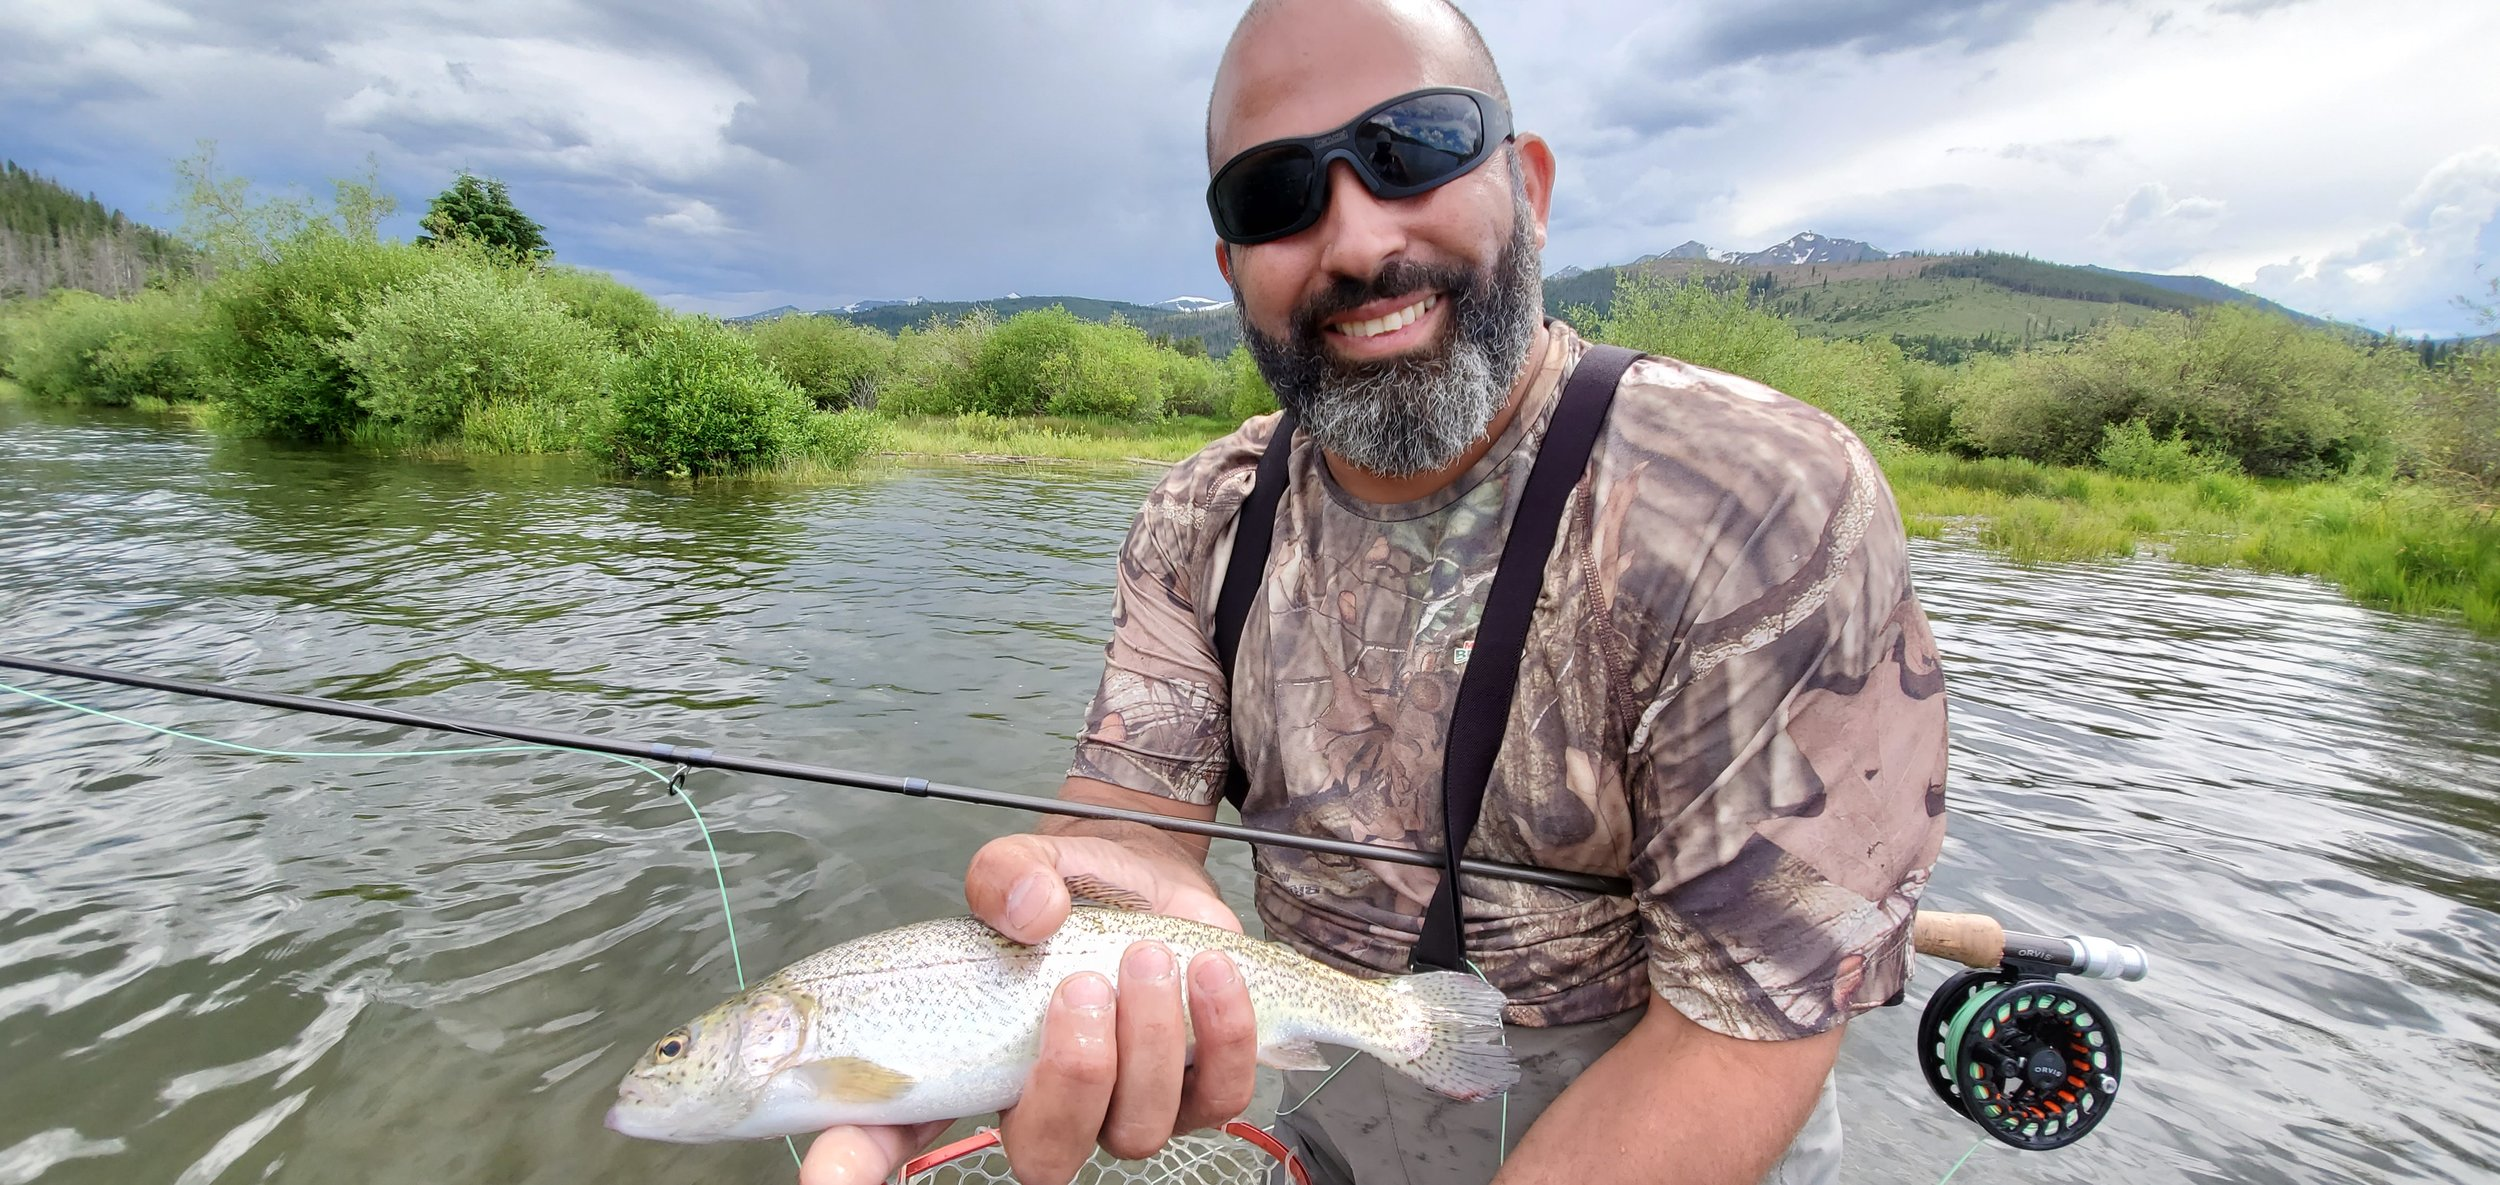 Fly fishing is a great activity for all skill levels and ages.